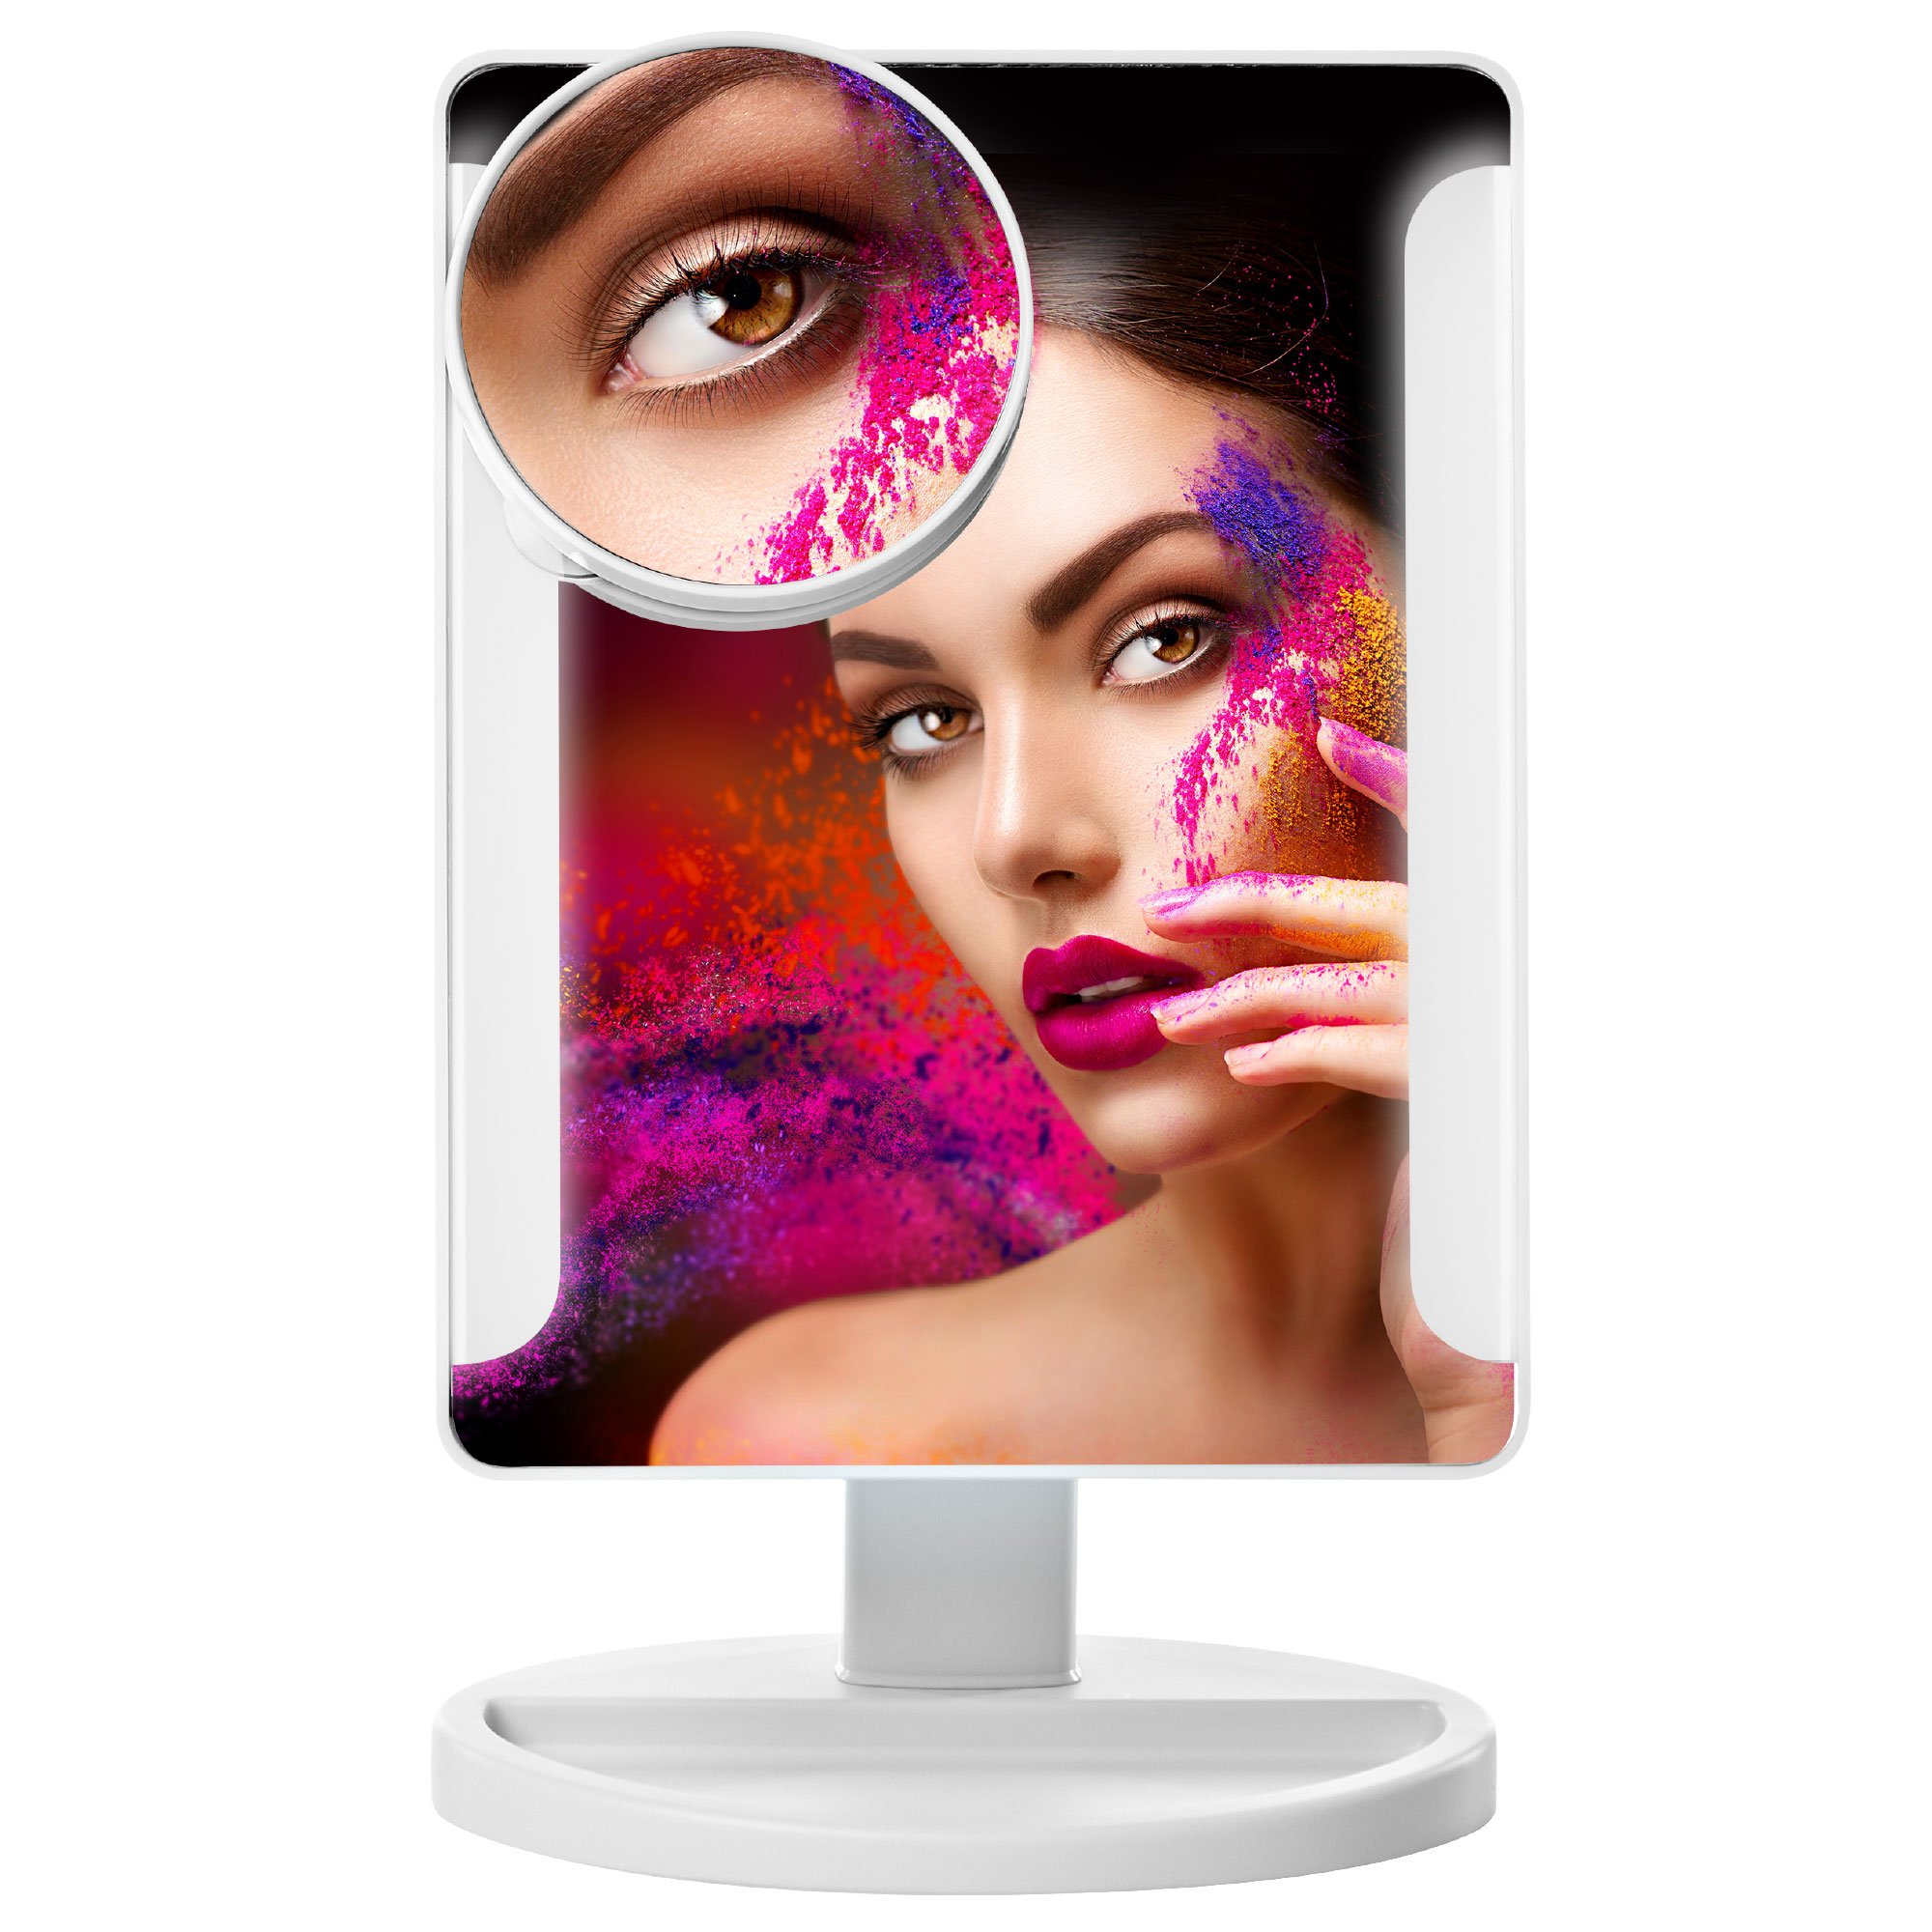 MacKleo LED Makeup Mirror - Smart Touch Portable and Adjustable Compact Travel Vanity Mirror - Natural Daylight Lighted Mirror with USB Cable